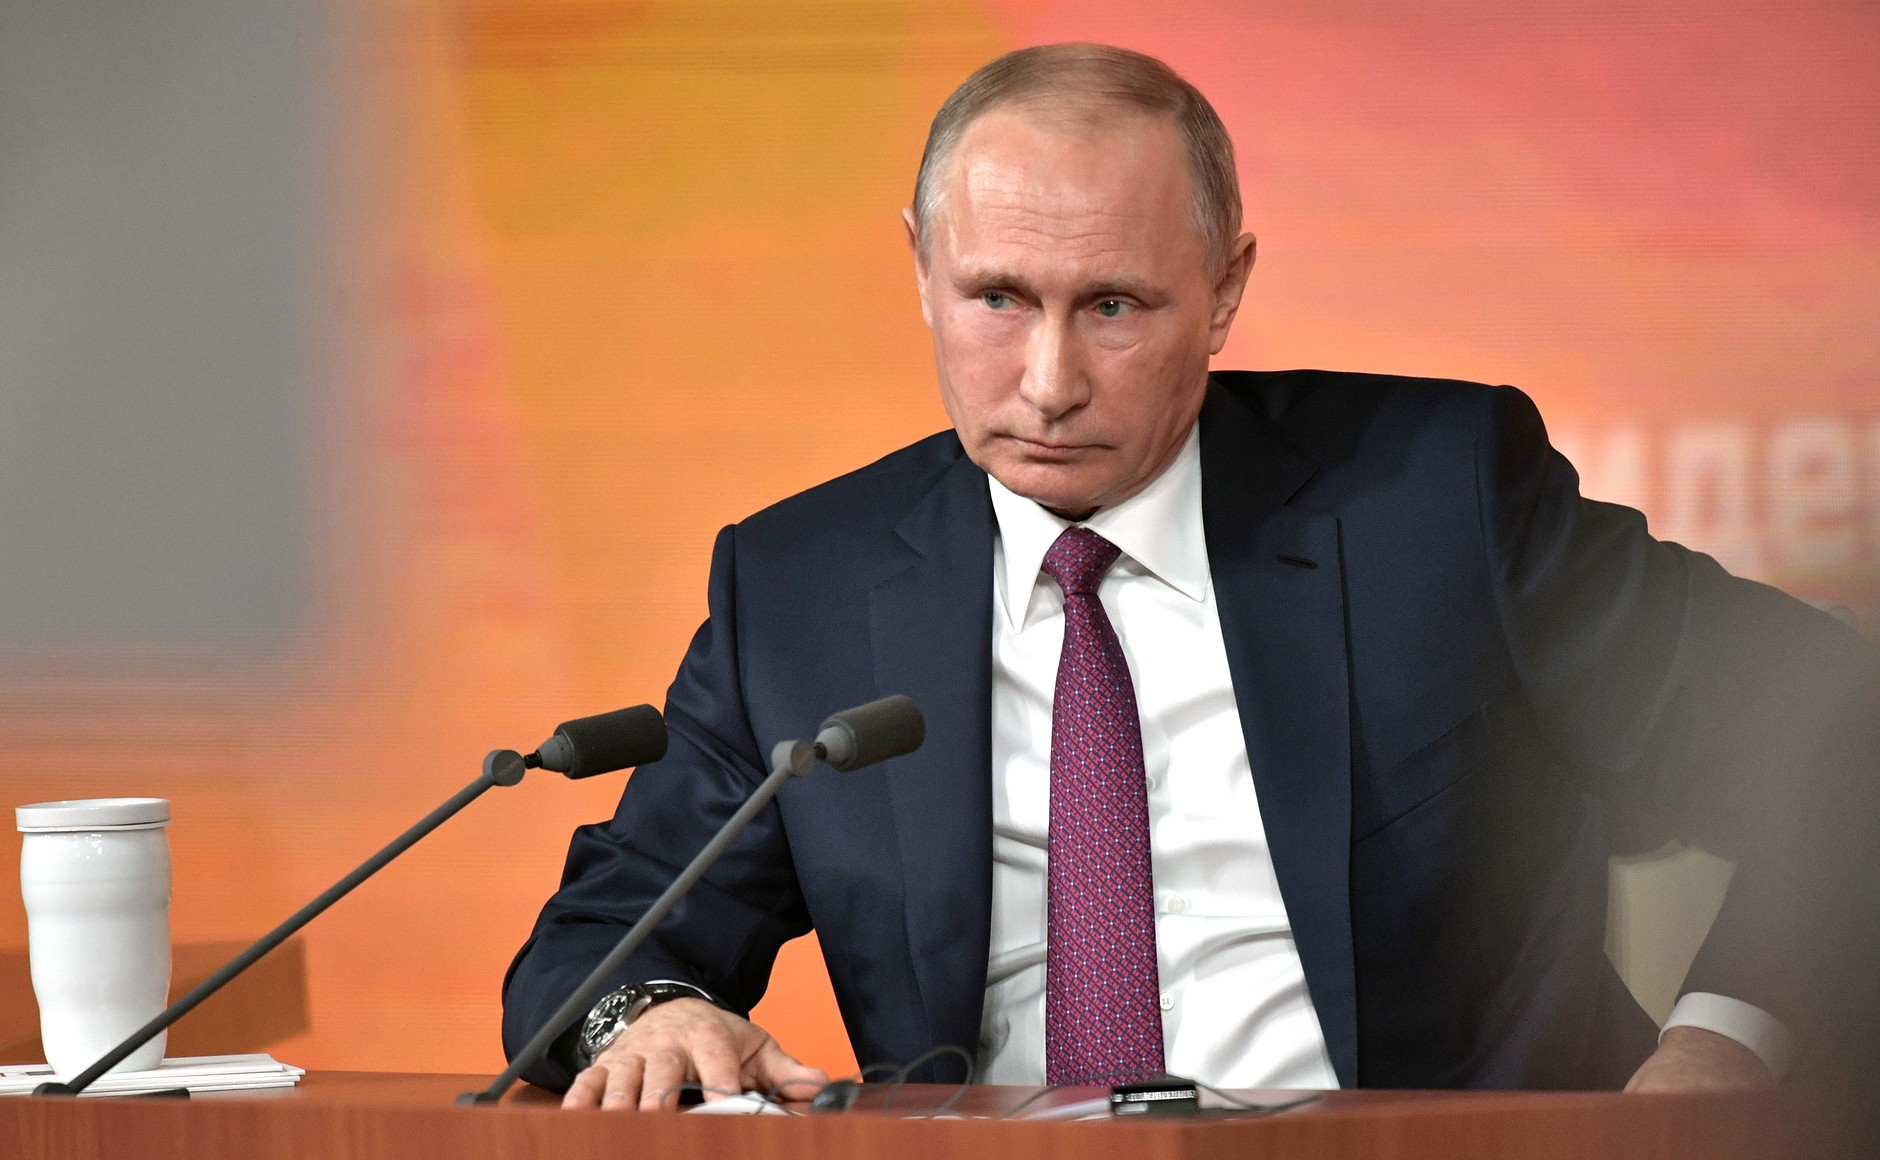 Vladimir Putin's Annual News Conference Part I: 'Nurturing Rivals Is Not What I Need To Do'